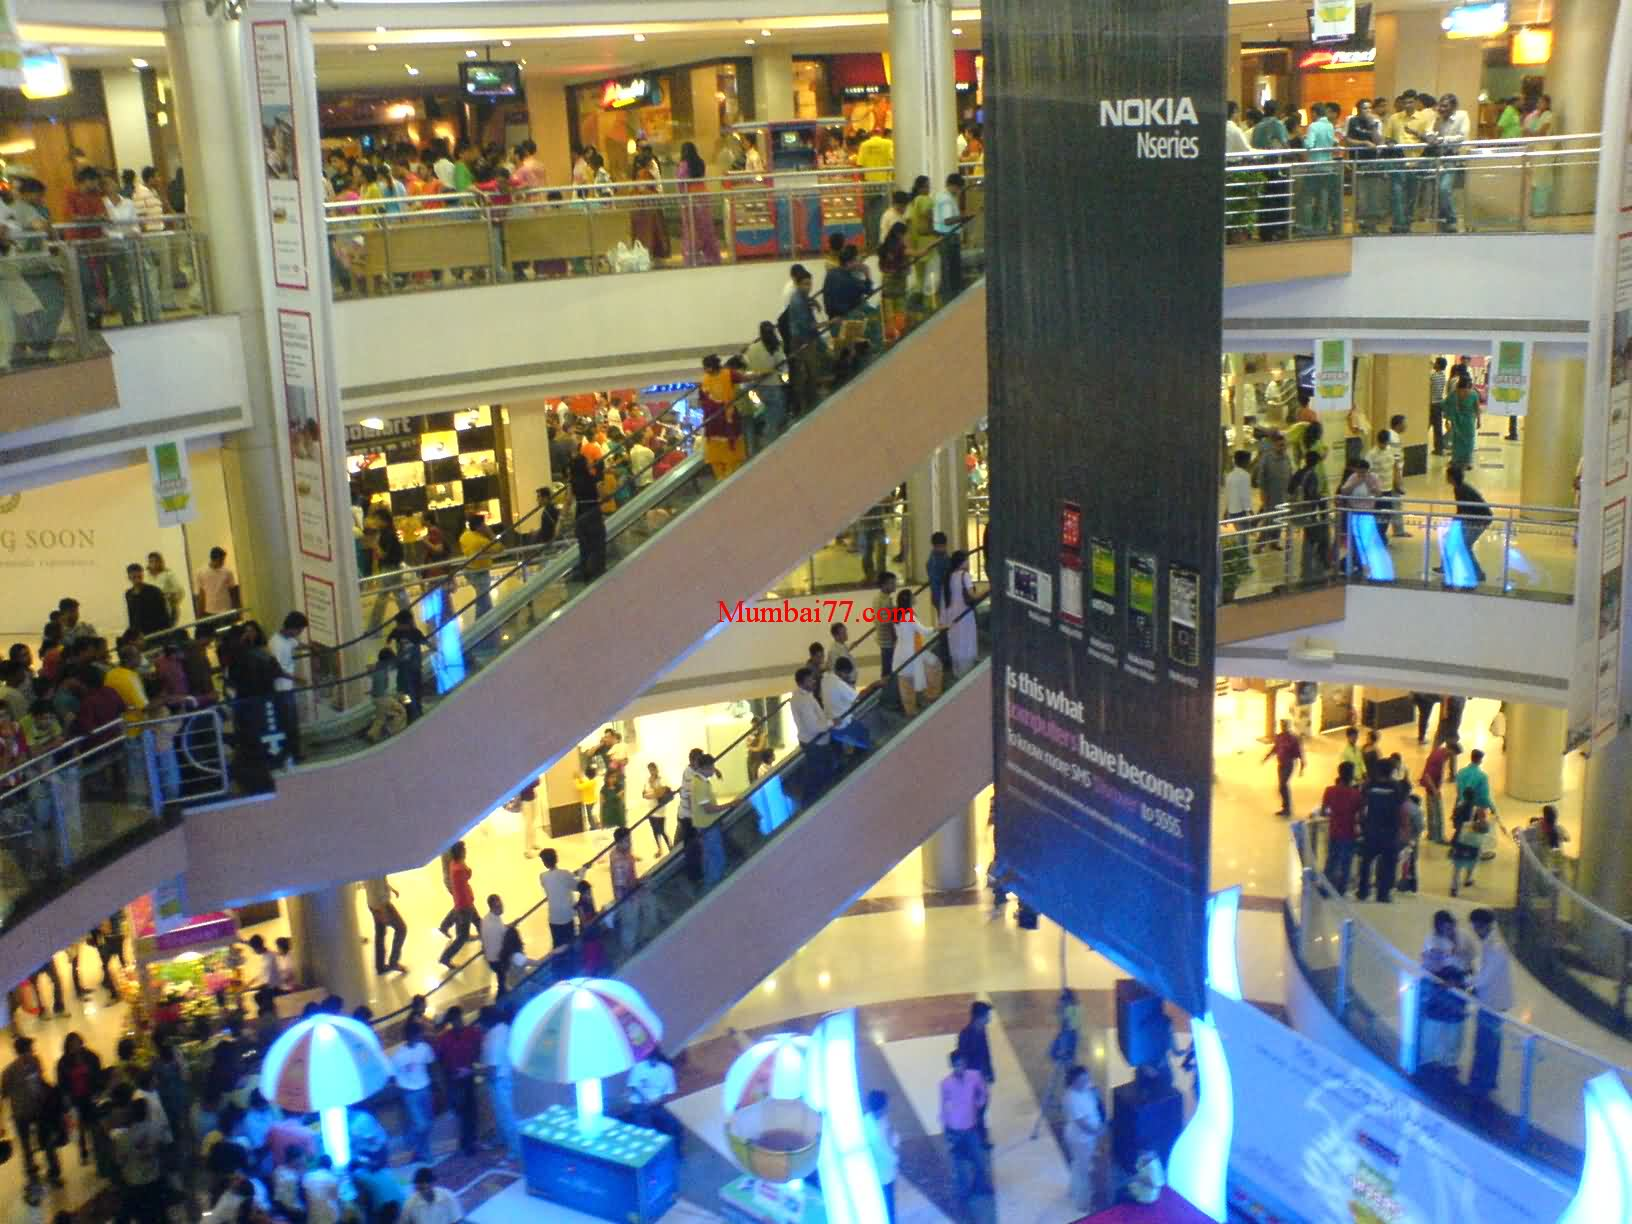 mall culture in mumbai Featuring the best shopping malls & top shopping complexes in mumbai from the inorbit mall & atria mall to the palladium.